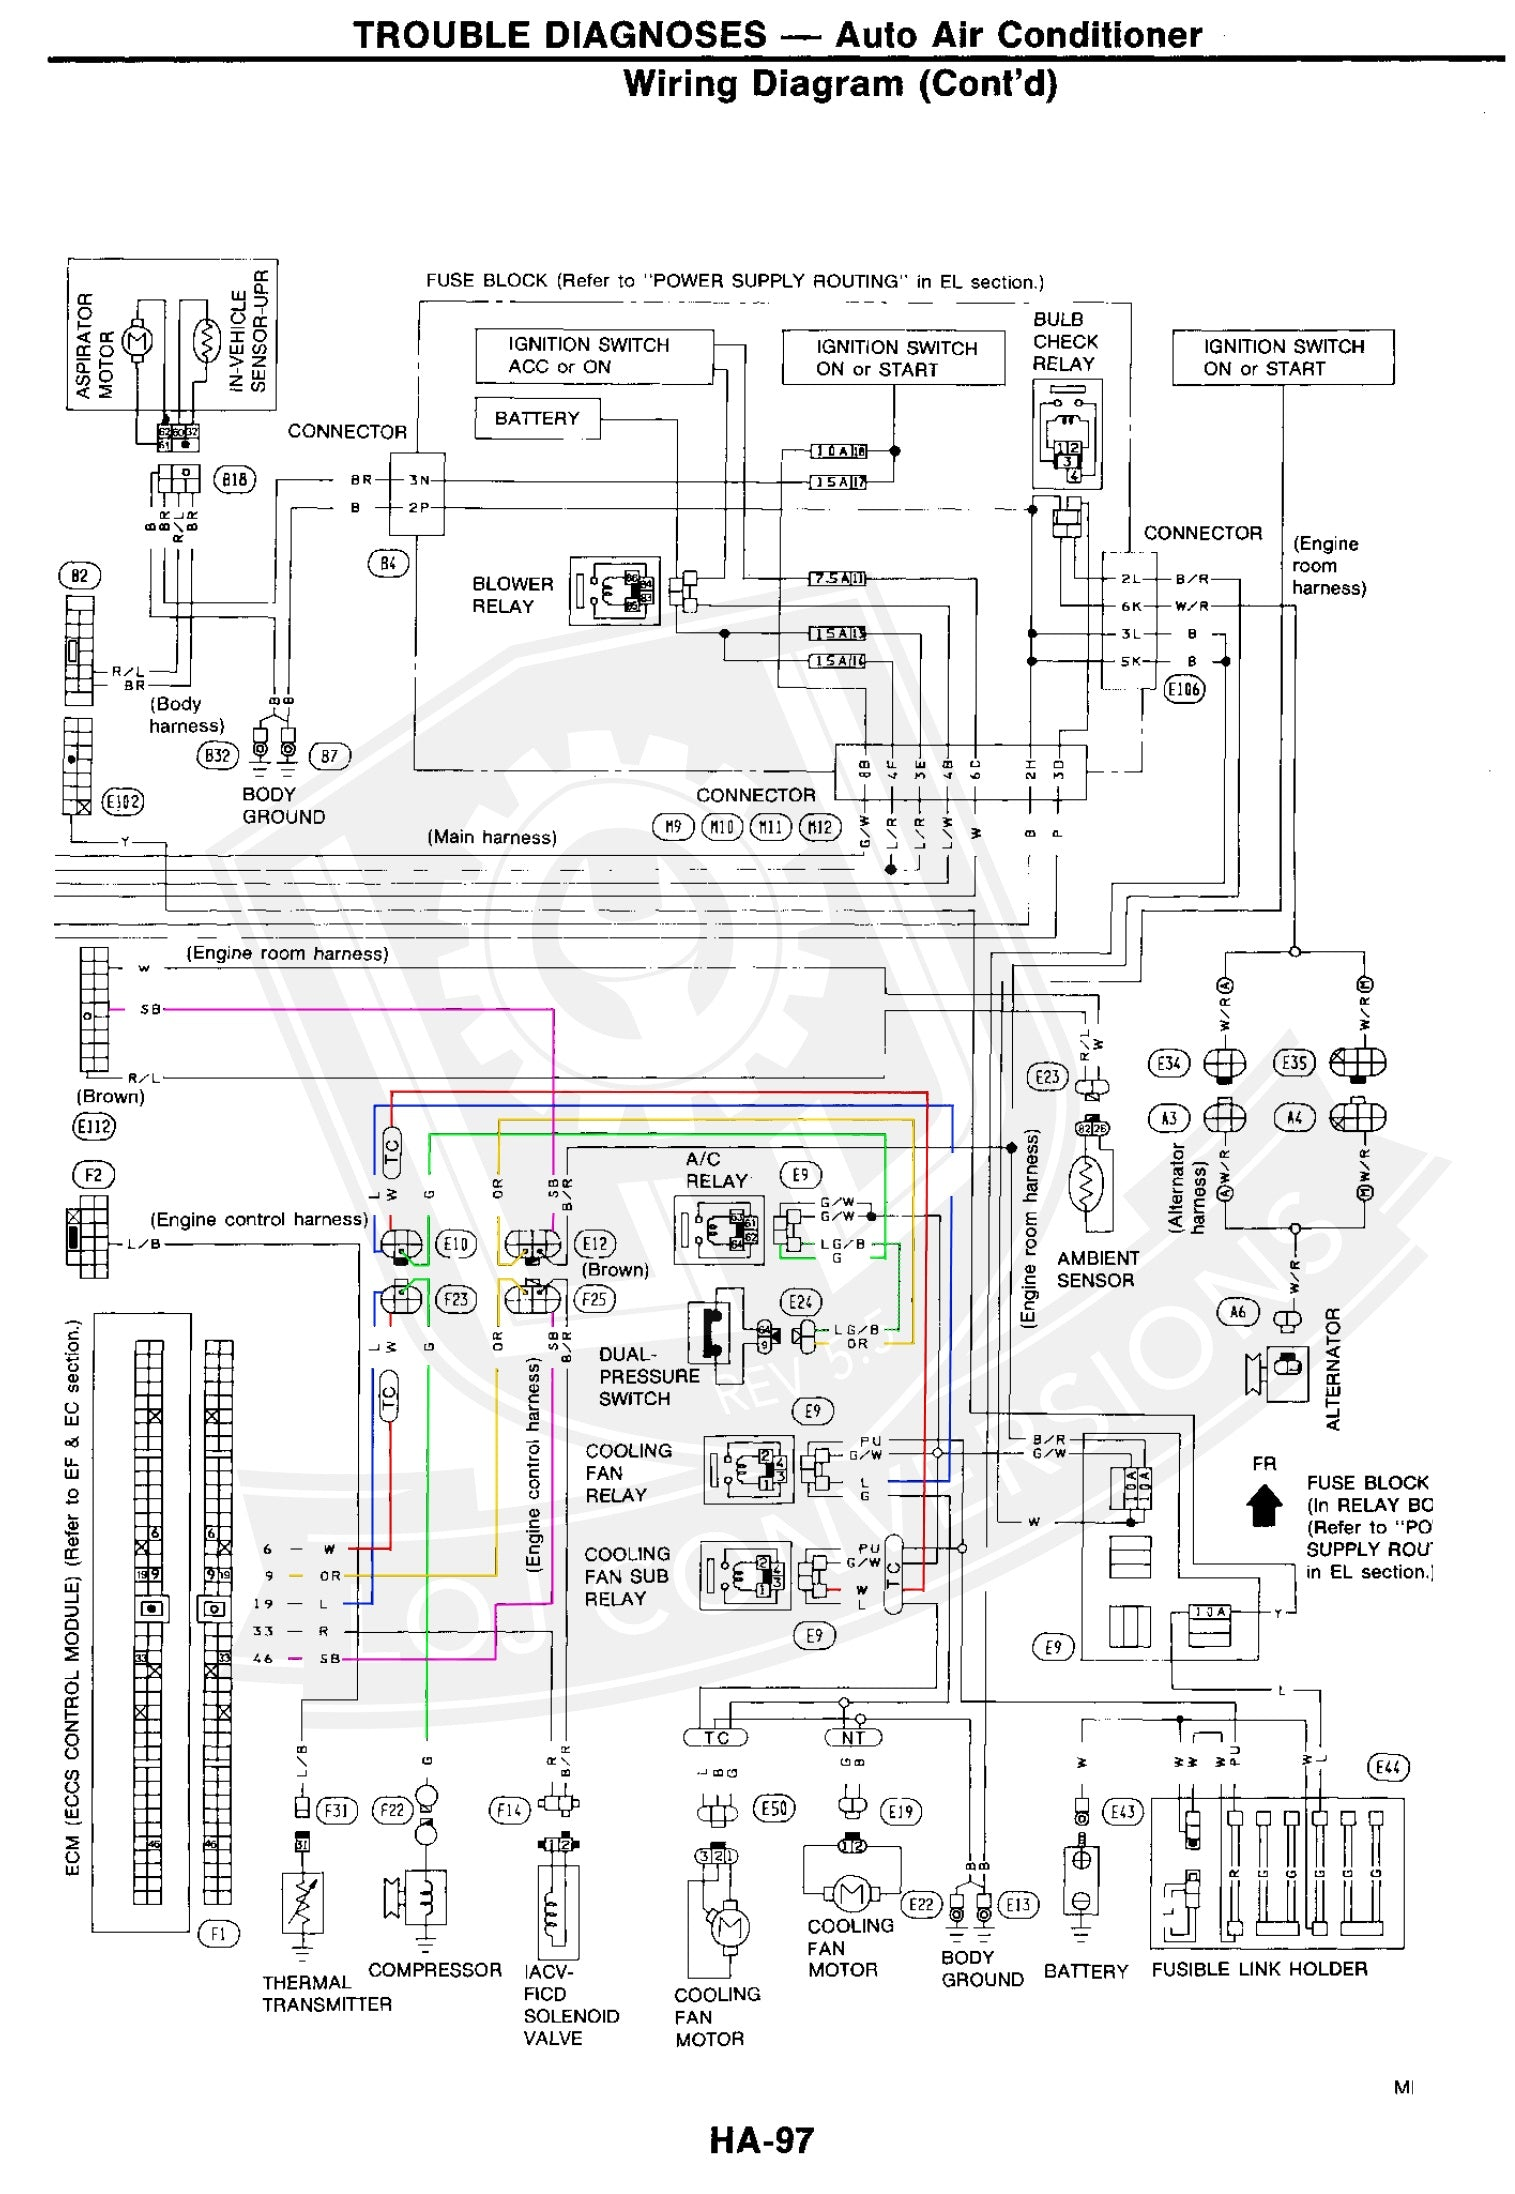 nissan 300zx wiring diagram harness wire center u2022 rh linxglobal co 1986 nissan 300zx wiring diagram 1992 nissan 300zx wiring diagram